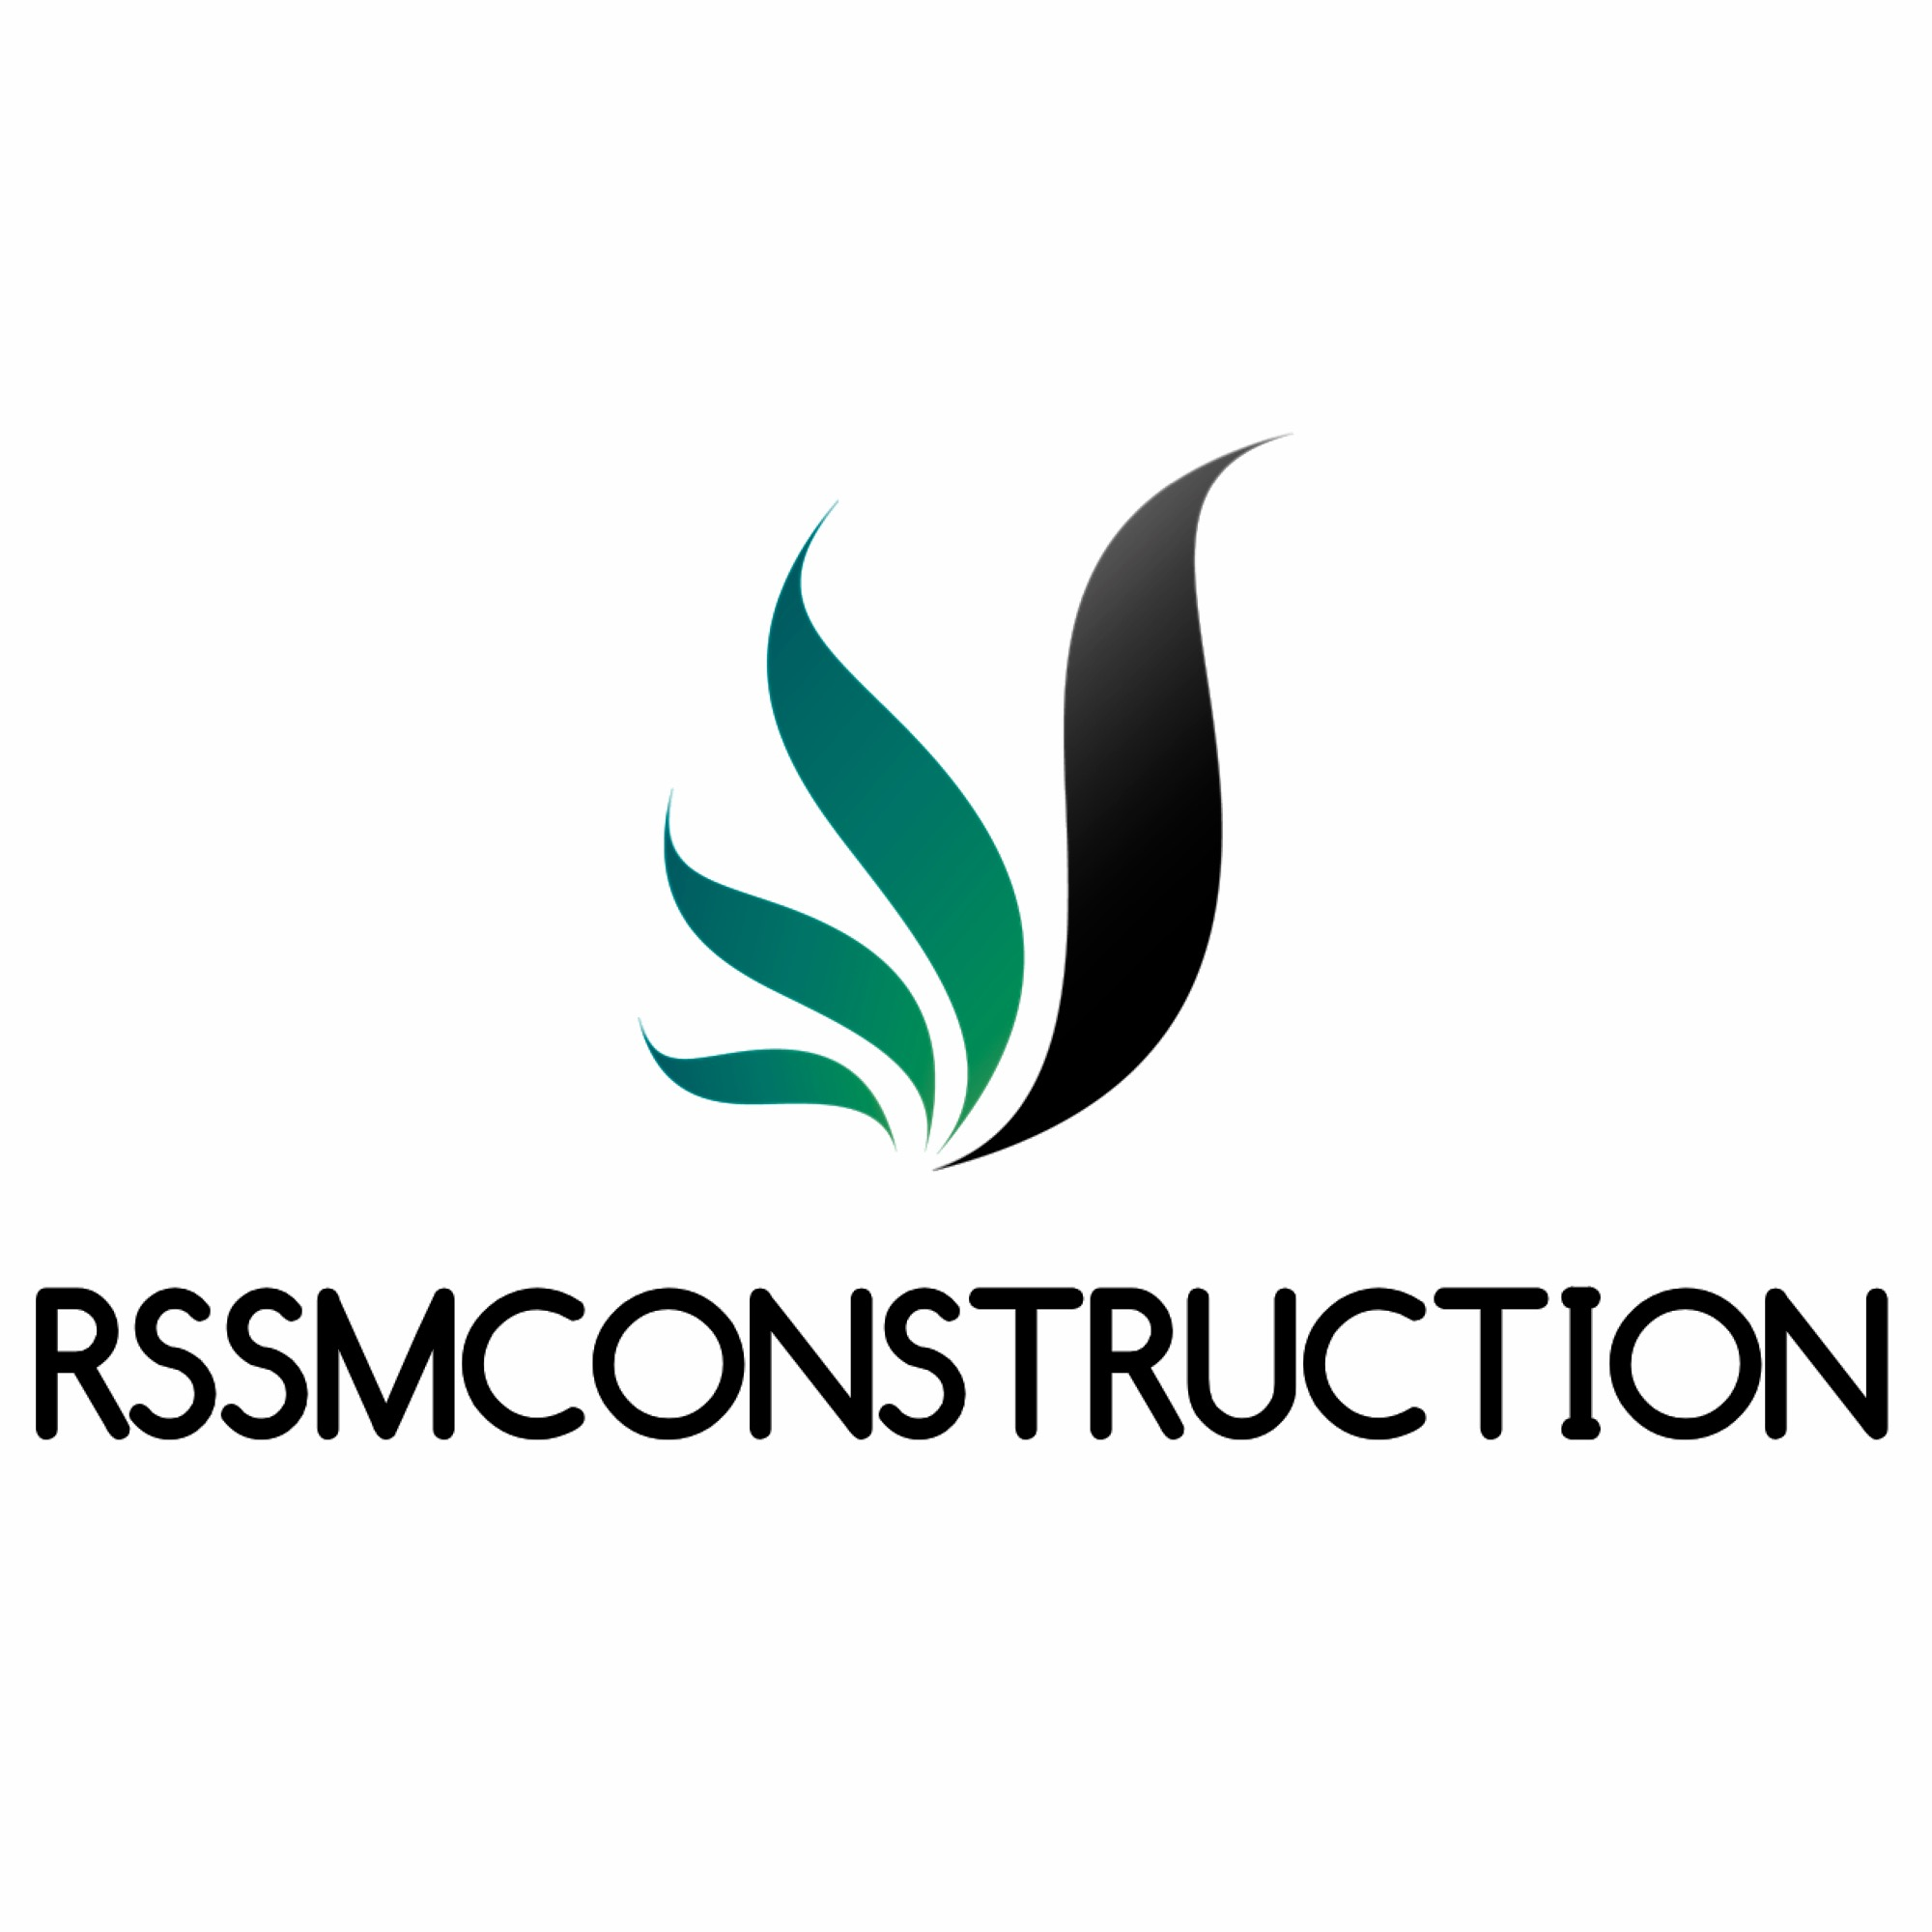 RSSM Construction LTD Logo